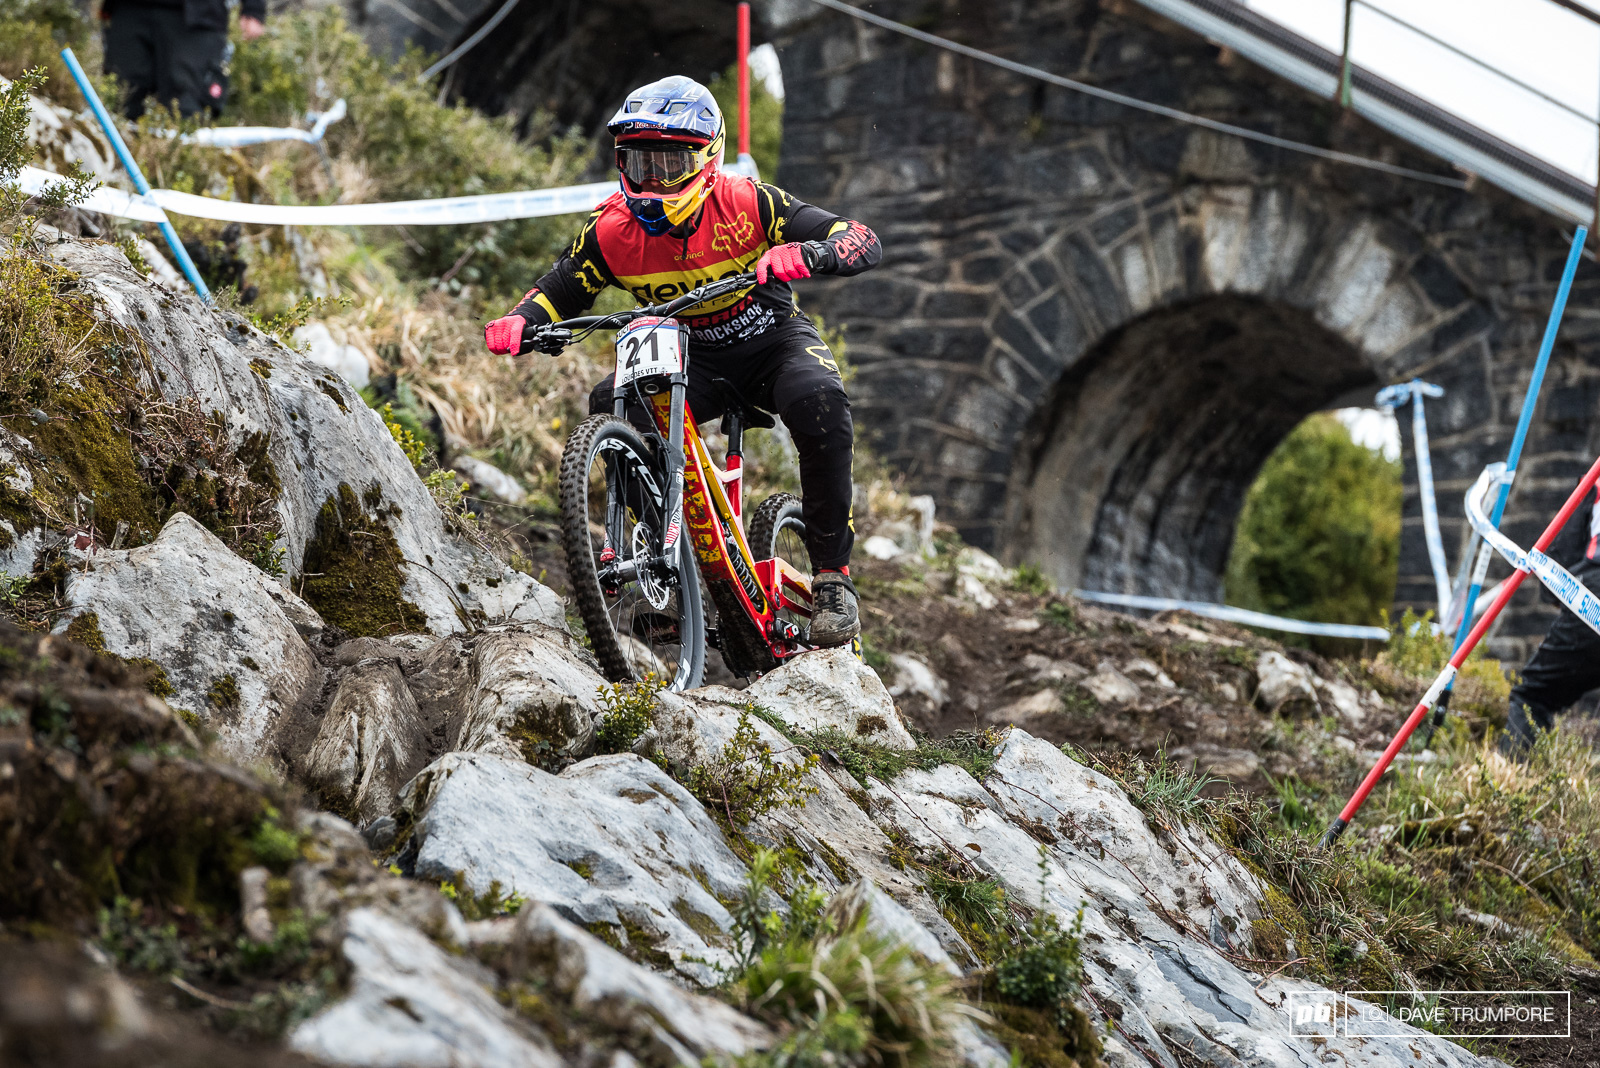 Steve Smith is strong and on form after fighting injuries the past two season s and his 4th place in qualifying shows that he means business in Lourdes.